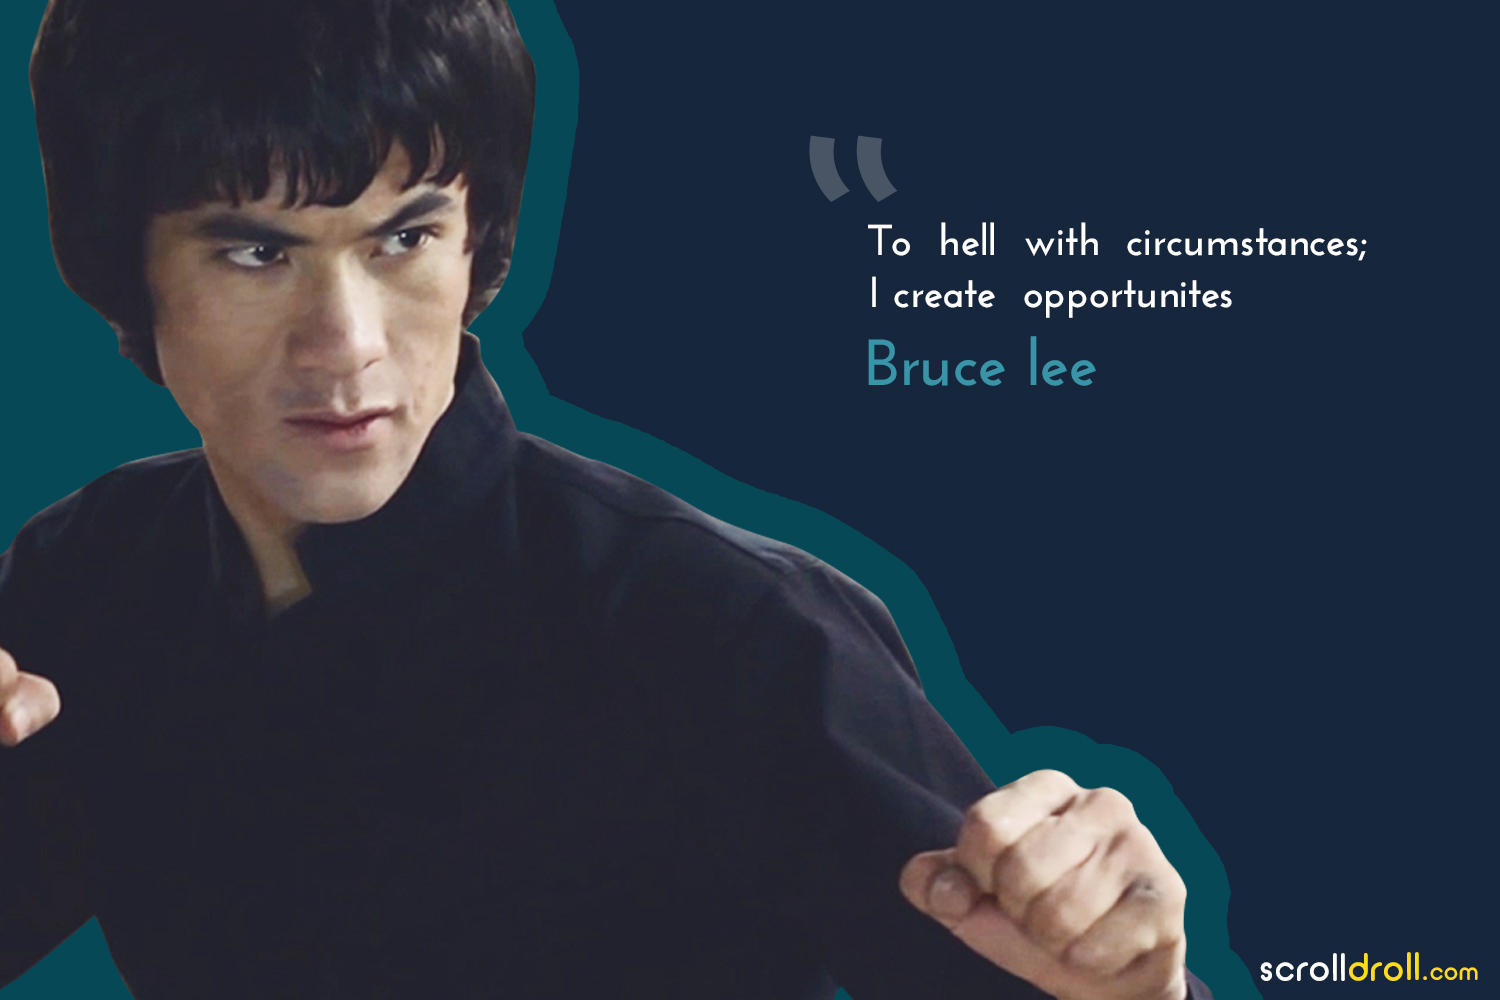 Powerful Quotes By Successful People-quote by Bruce lee